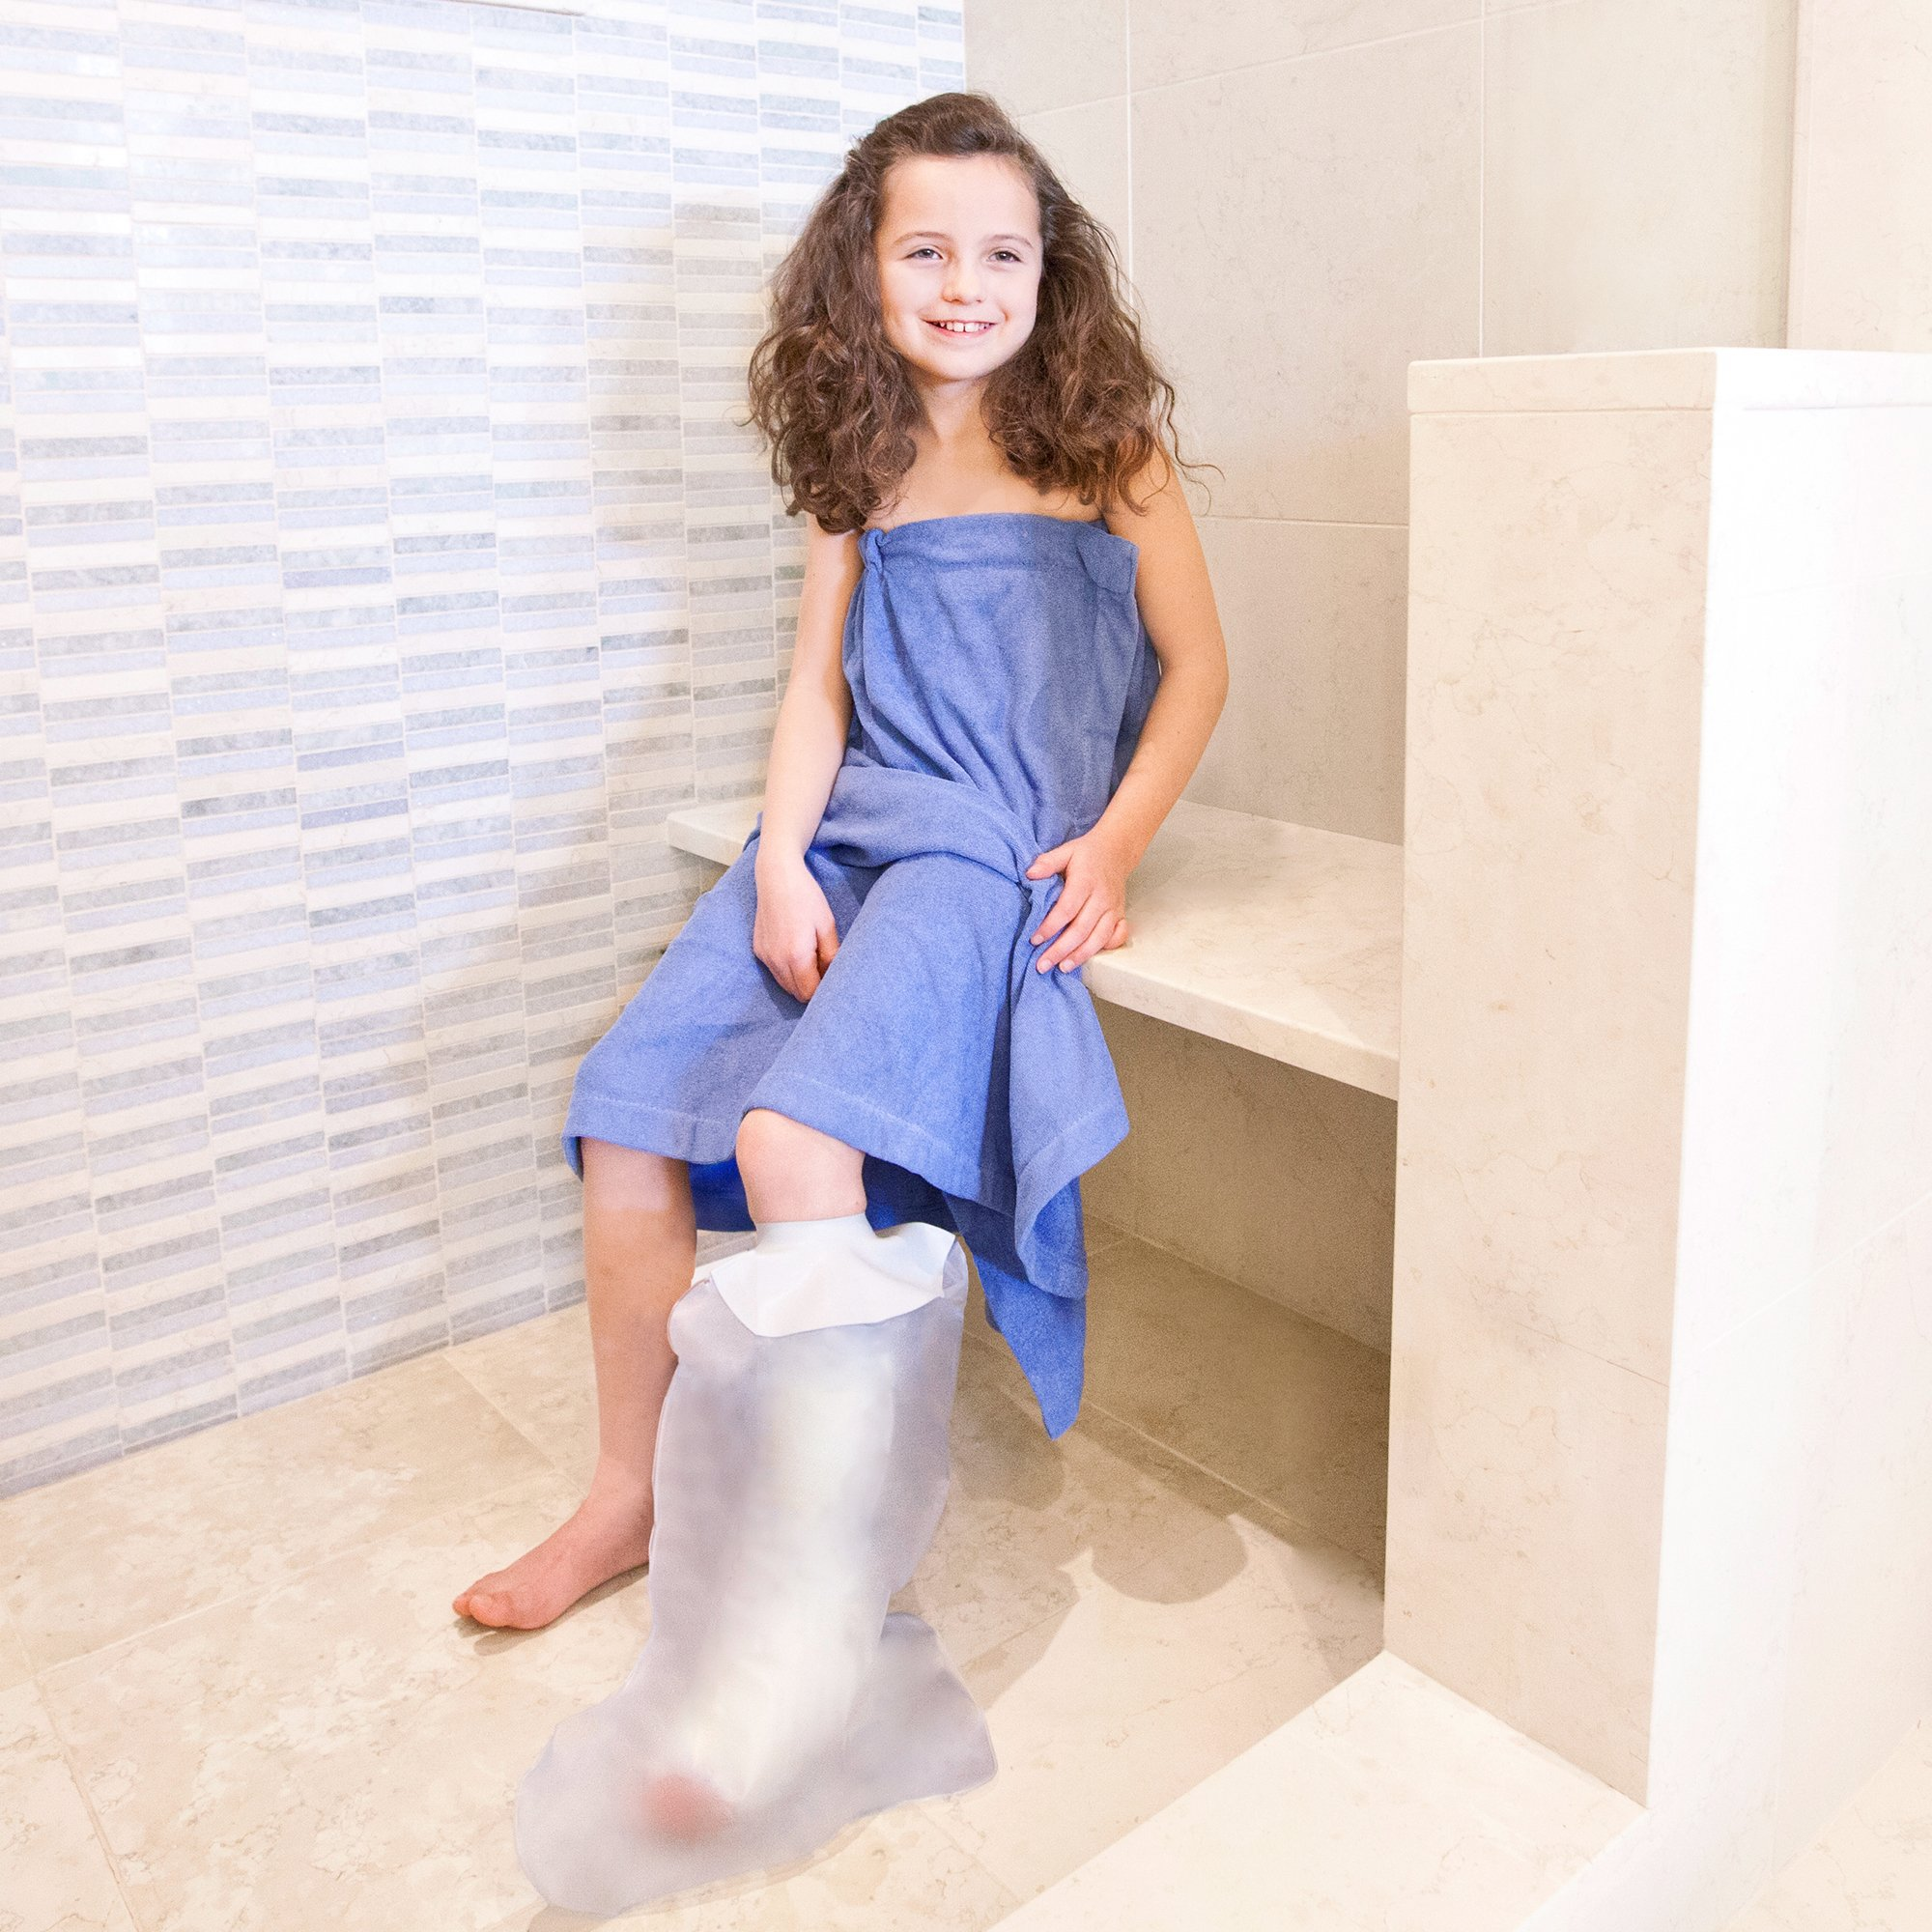 Seal Tight Freedom Cast and Bandage Protector, Best Watertight Protection, Pediatric Leg 23 inch